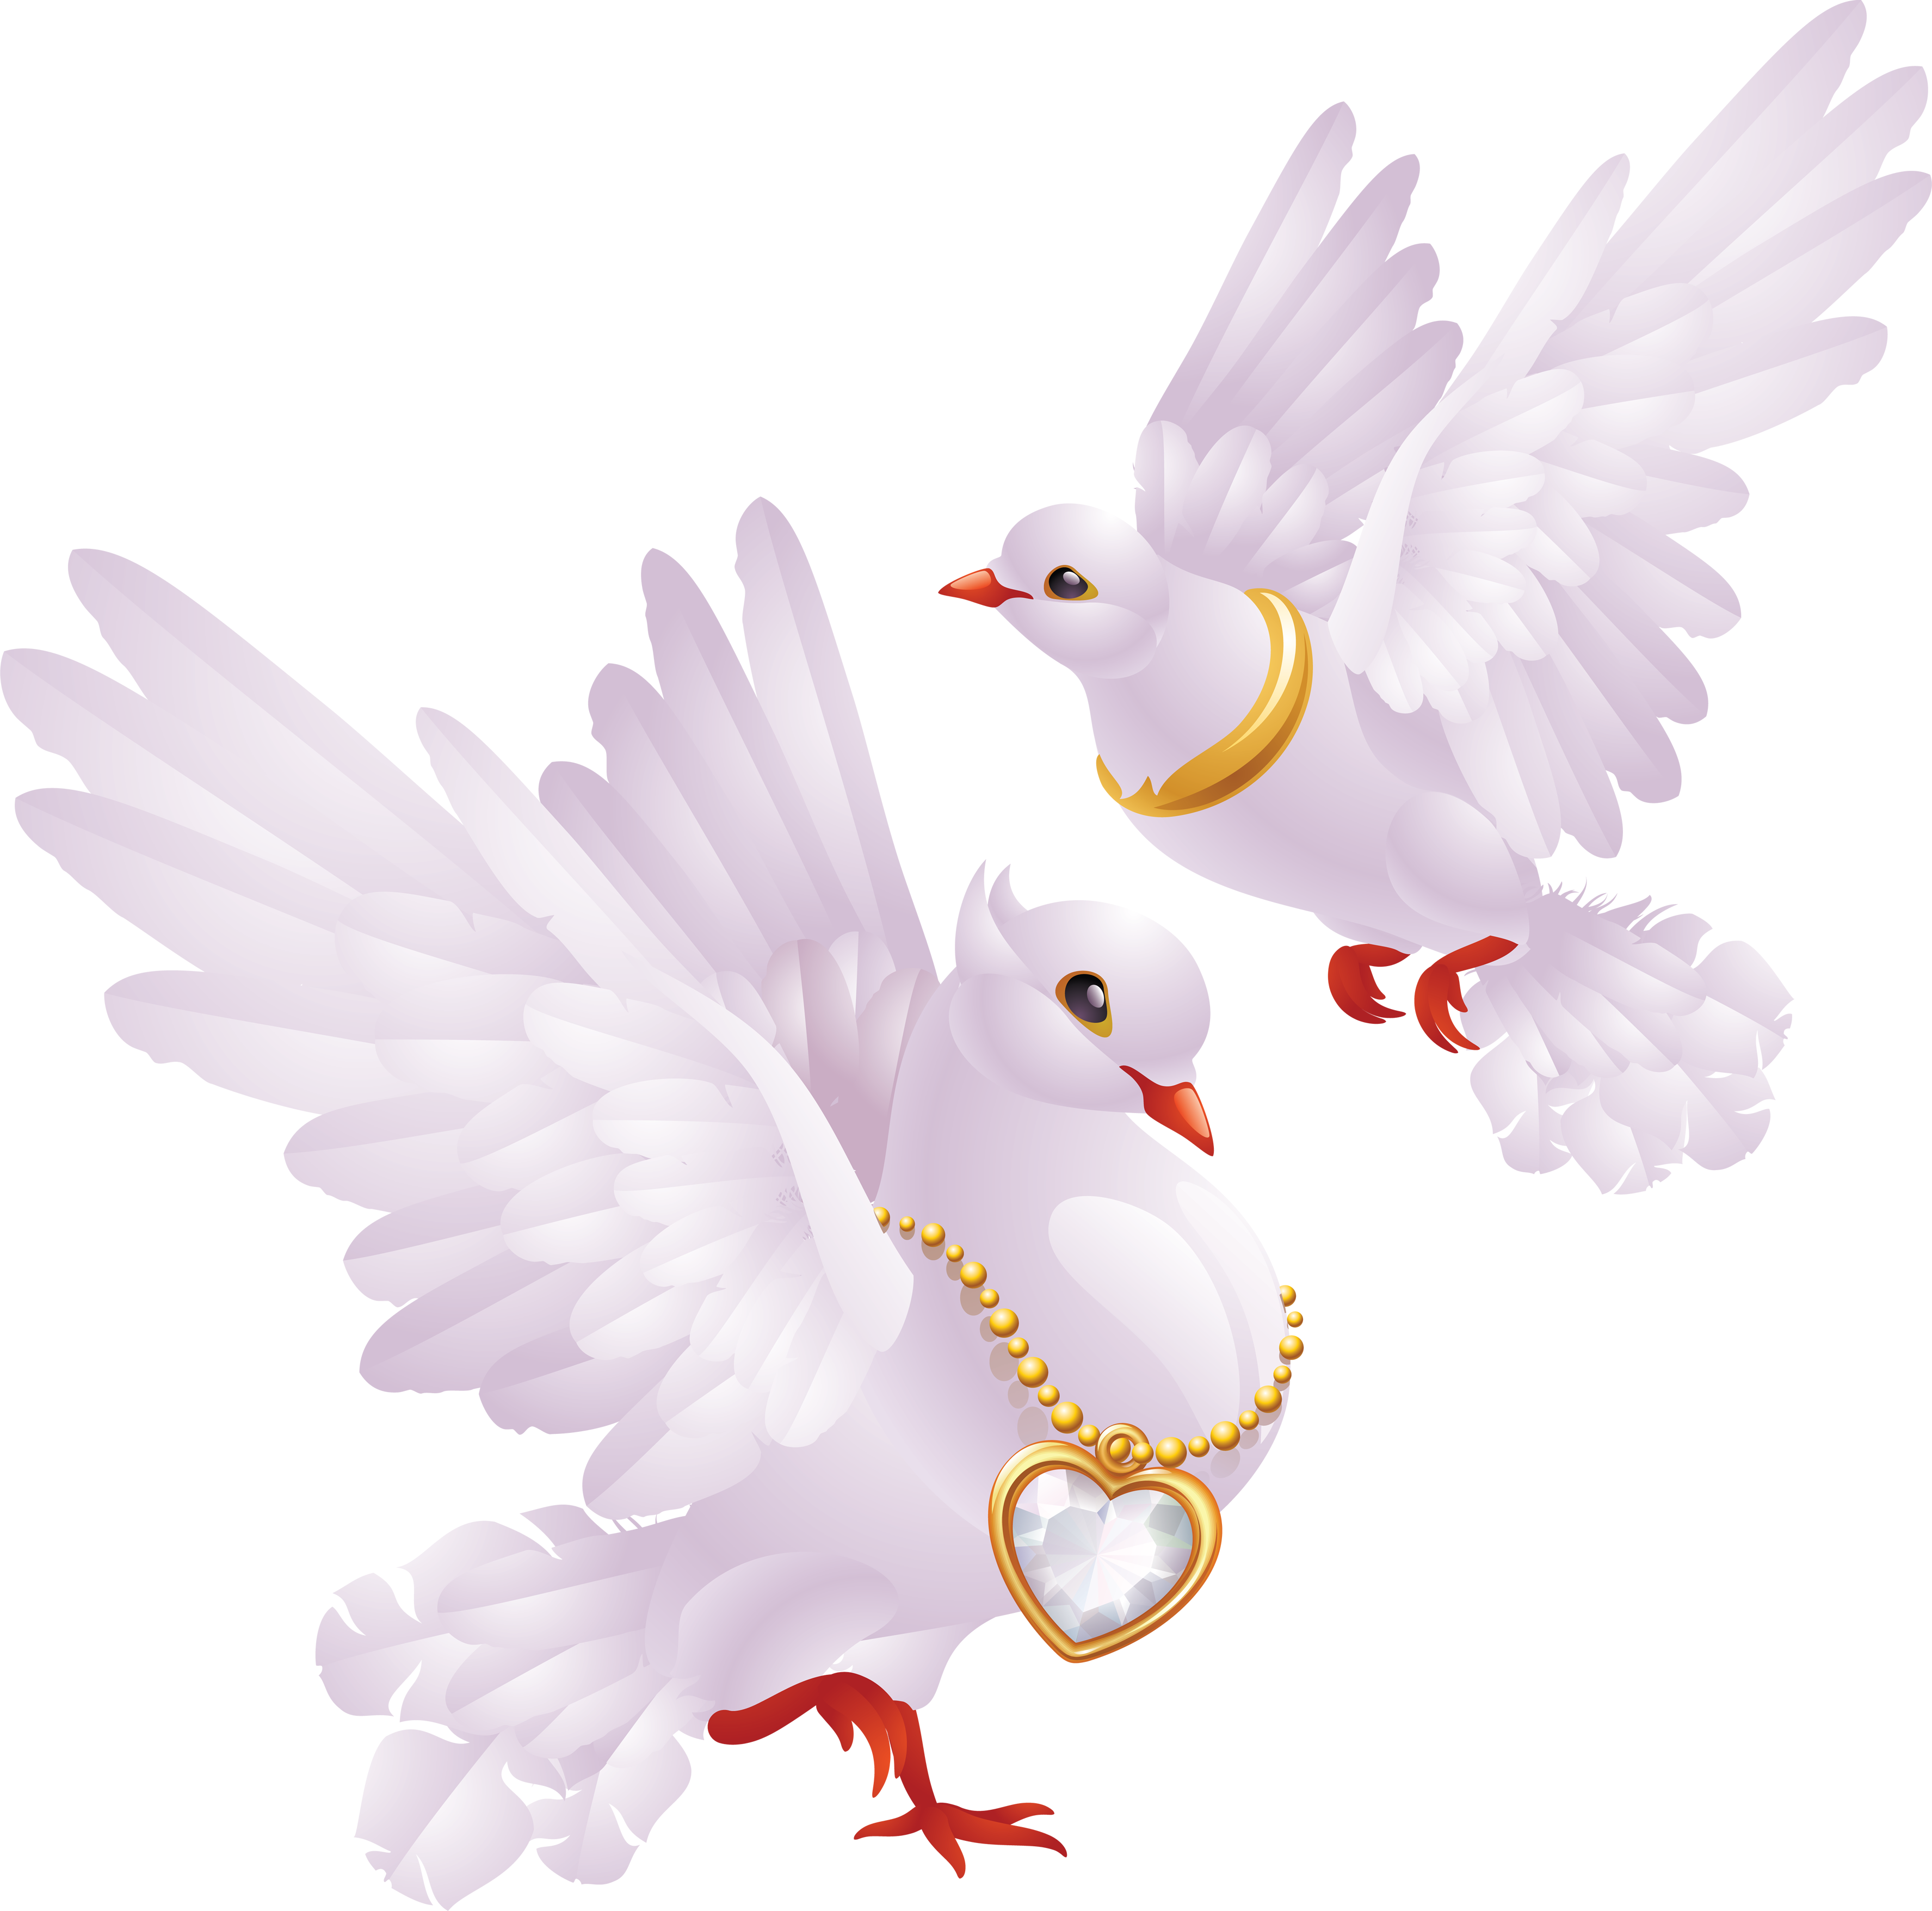 Couple doves for wedding png. Pigeon images free pictures